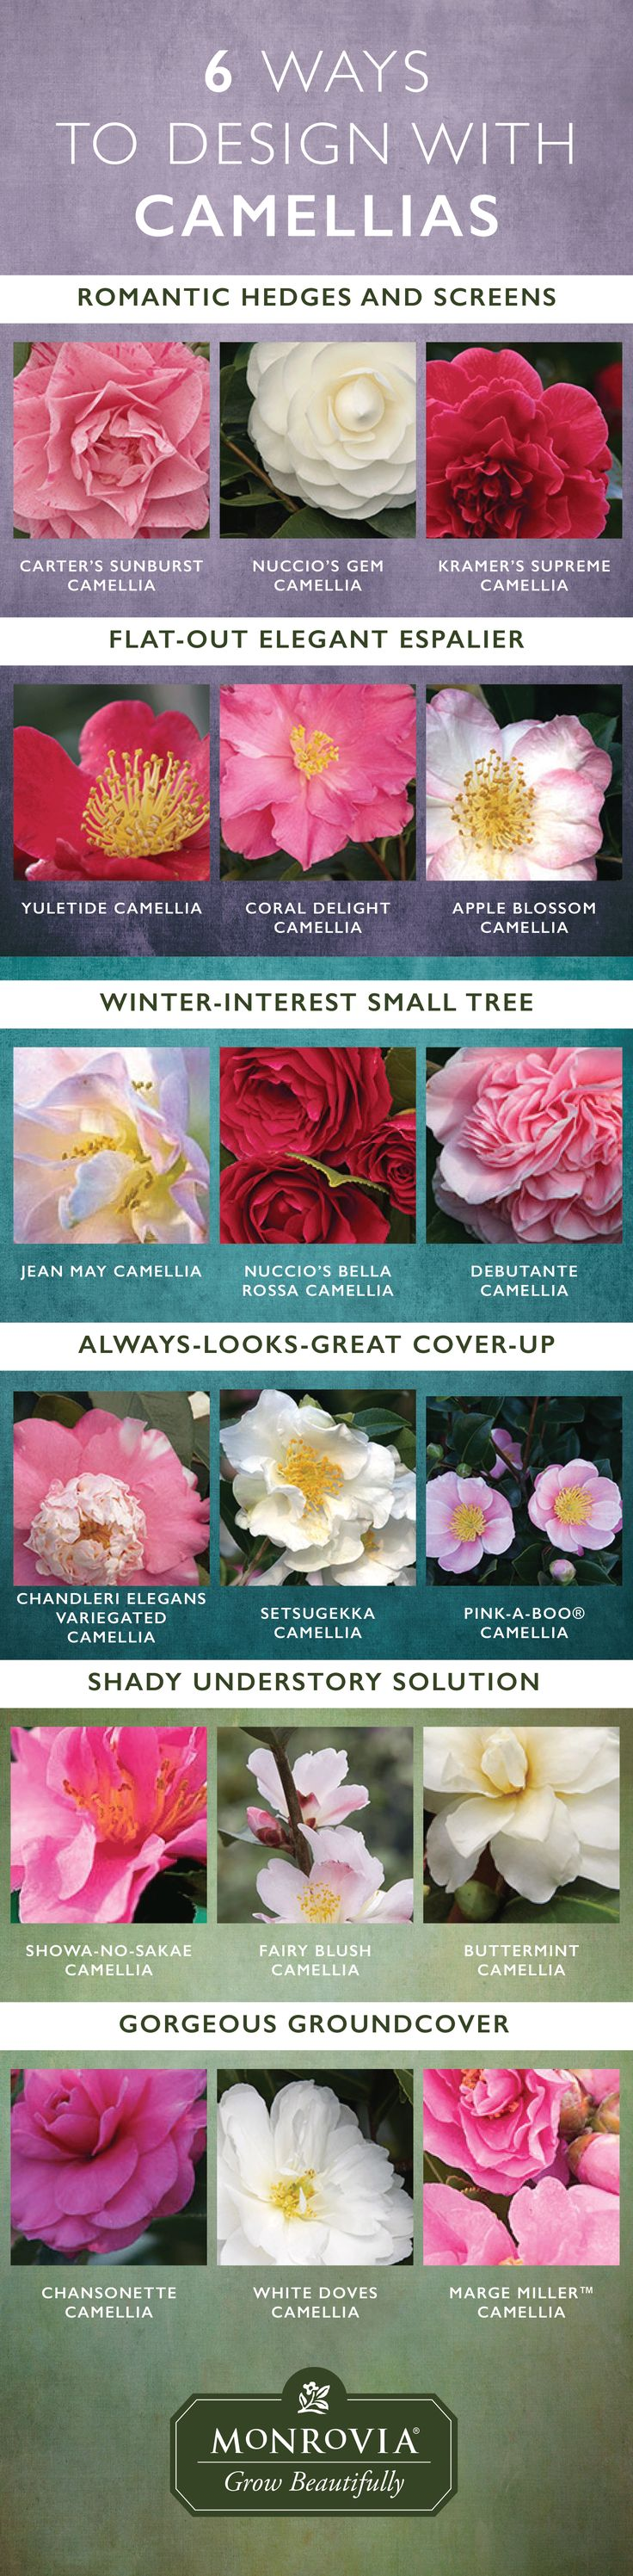 From groundcovers to small trees, camellias can fill many corners of the garden with long-lasting blooms.